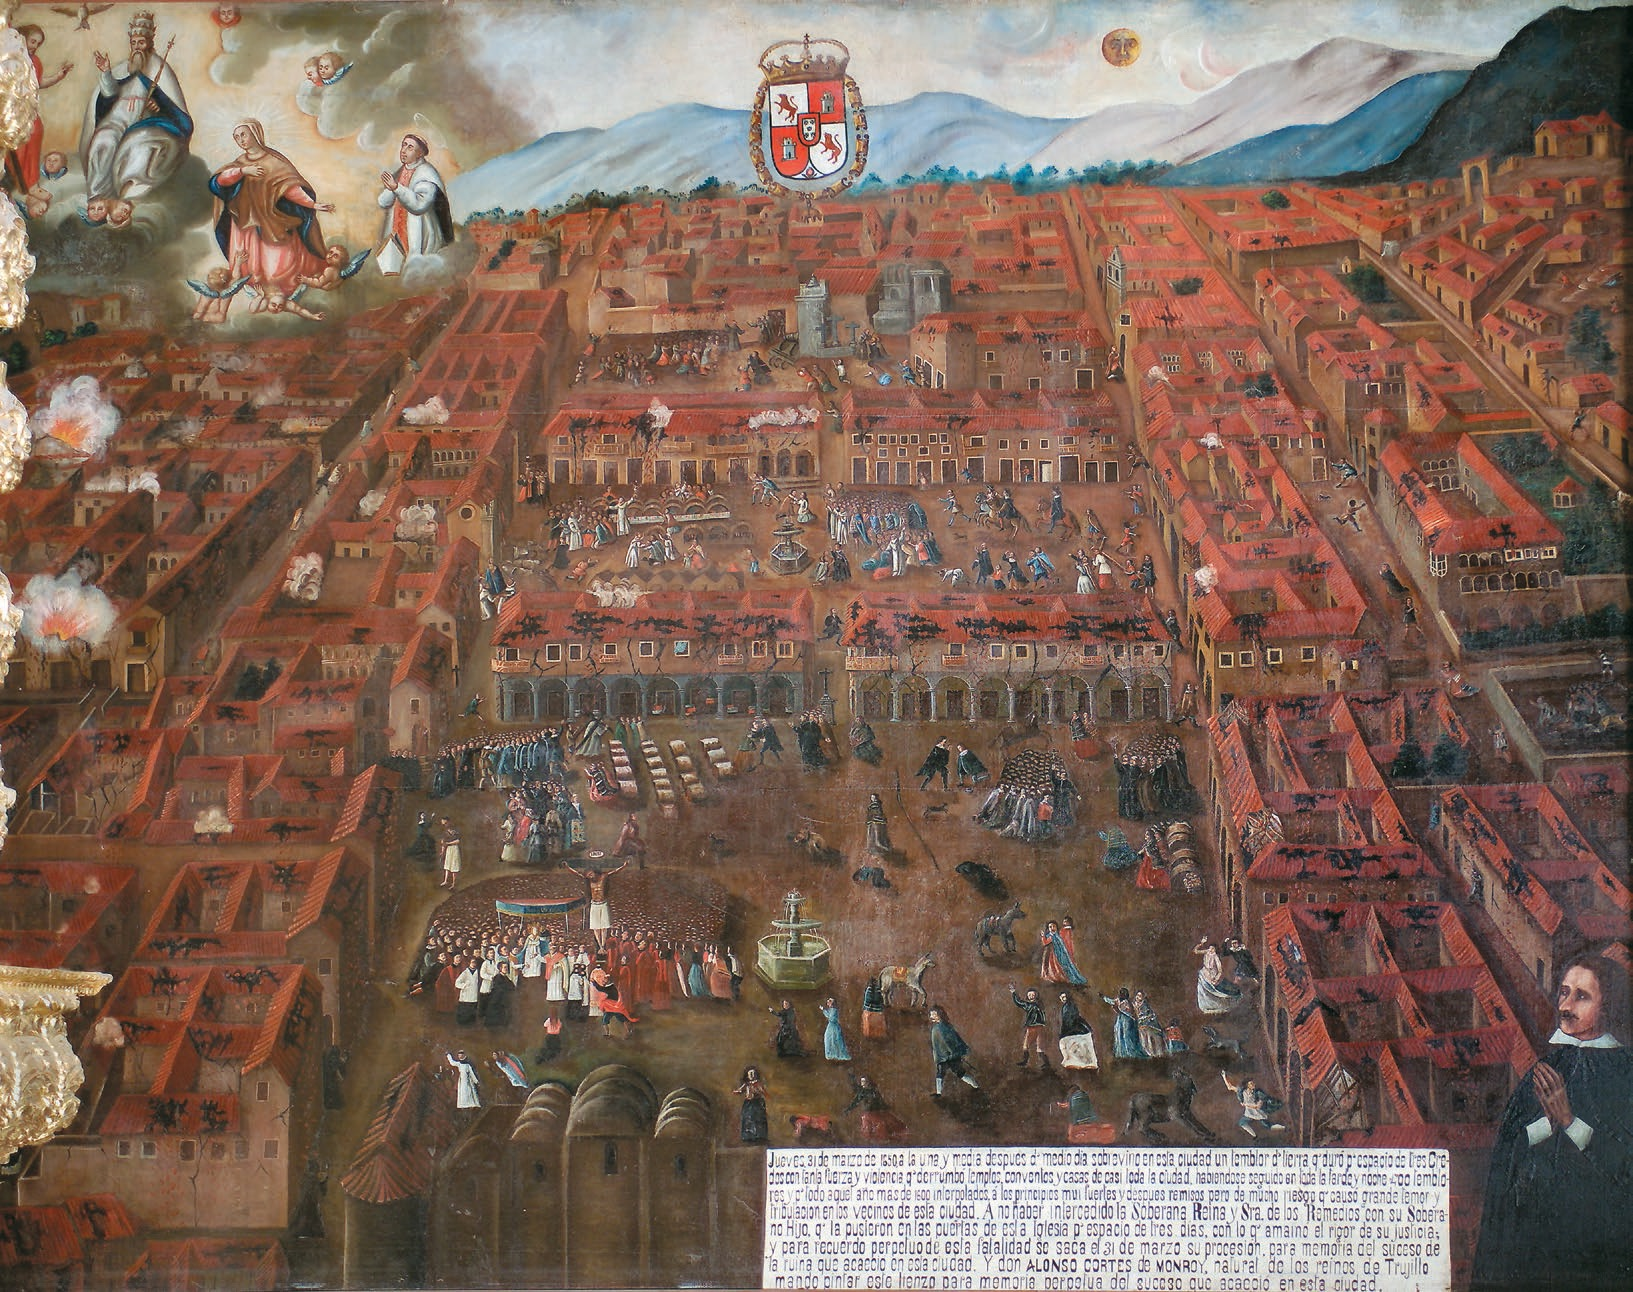 Fig. 4. Ex-voto of Cuzco's 1650 Earthquake, ca. 1651, oil on canvas, 10 ft. 11½ in. x 15 ft. 2 in. (3.34 x 4.62 m), Cathedral of Cuzco, Peru.